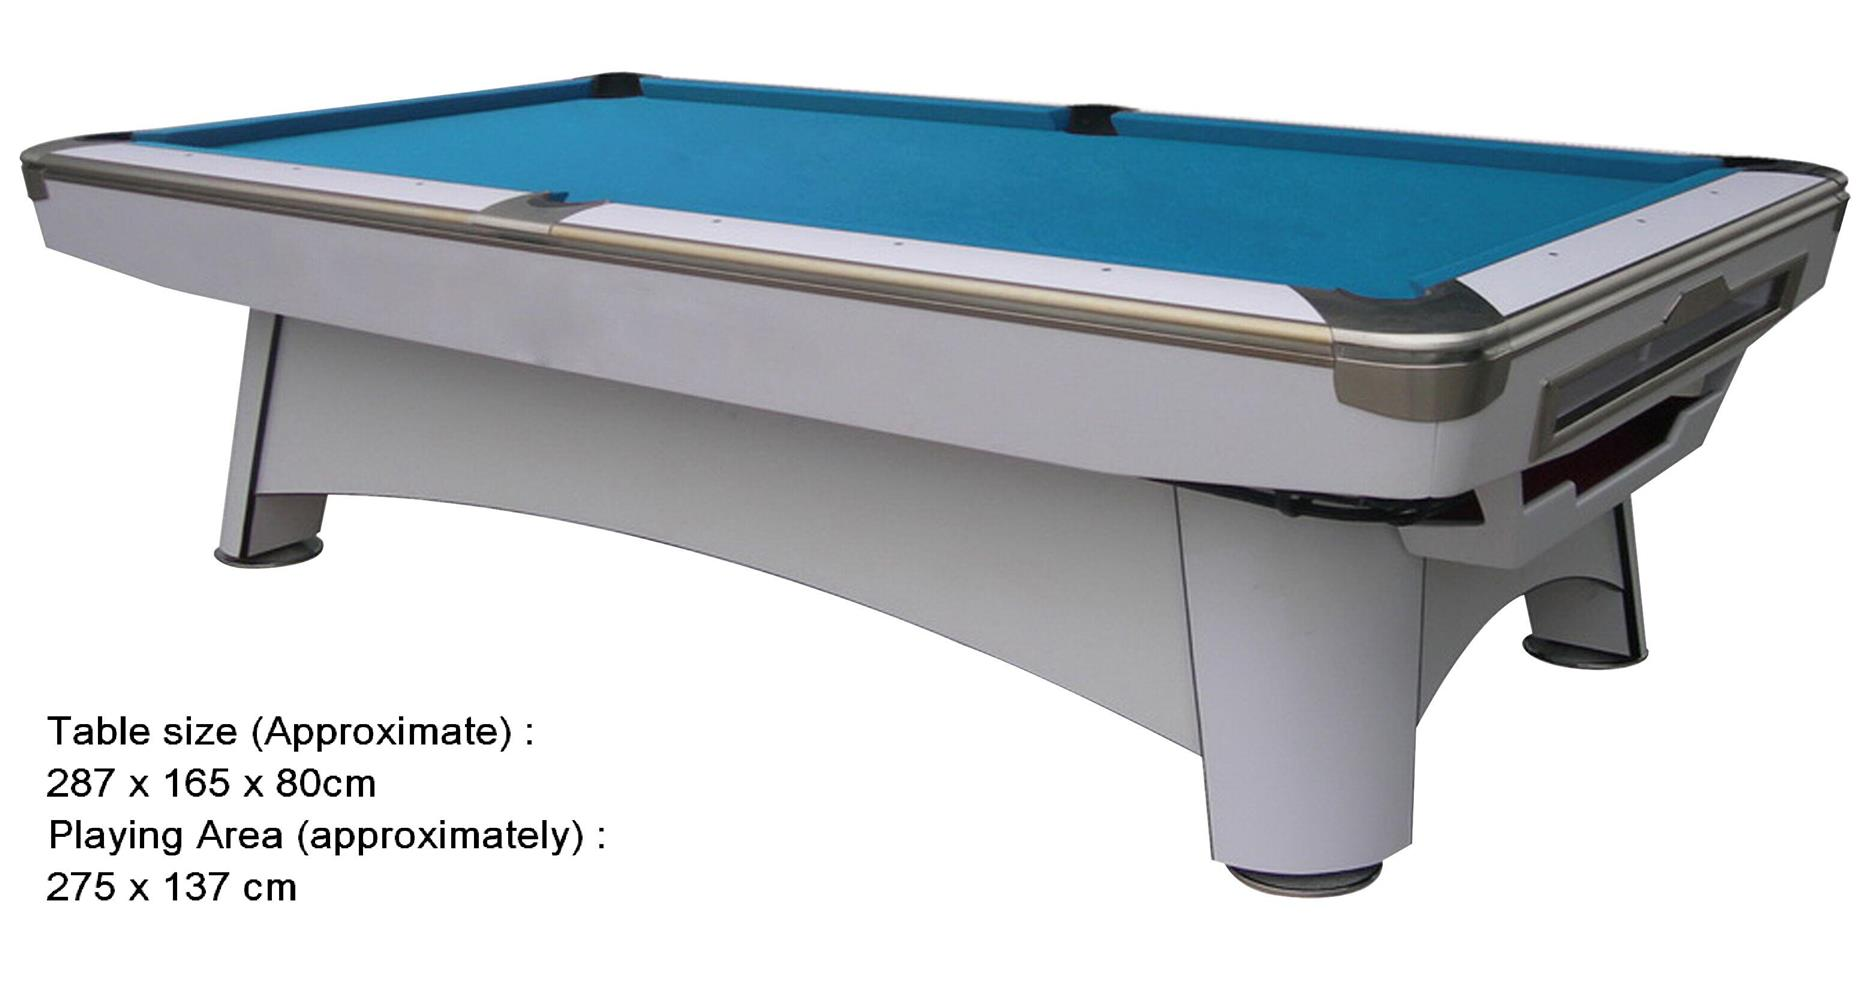 Pool table 9ft internatina end 12 22 2017 5 42 pm myt - What is the size of a standard pool table ...